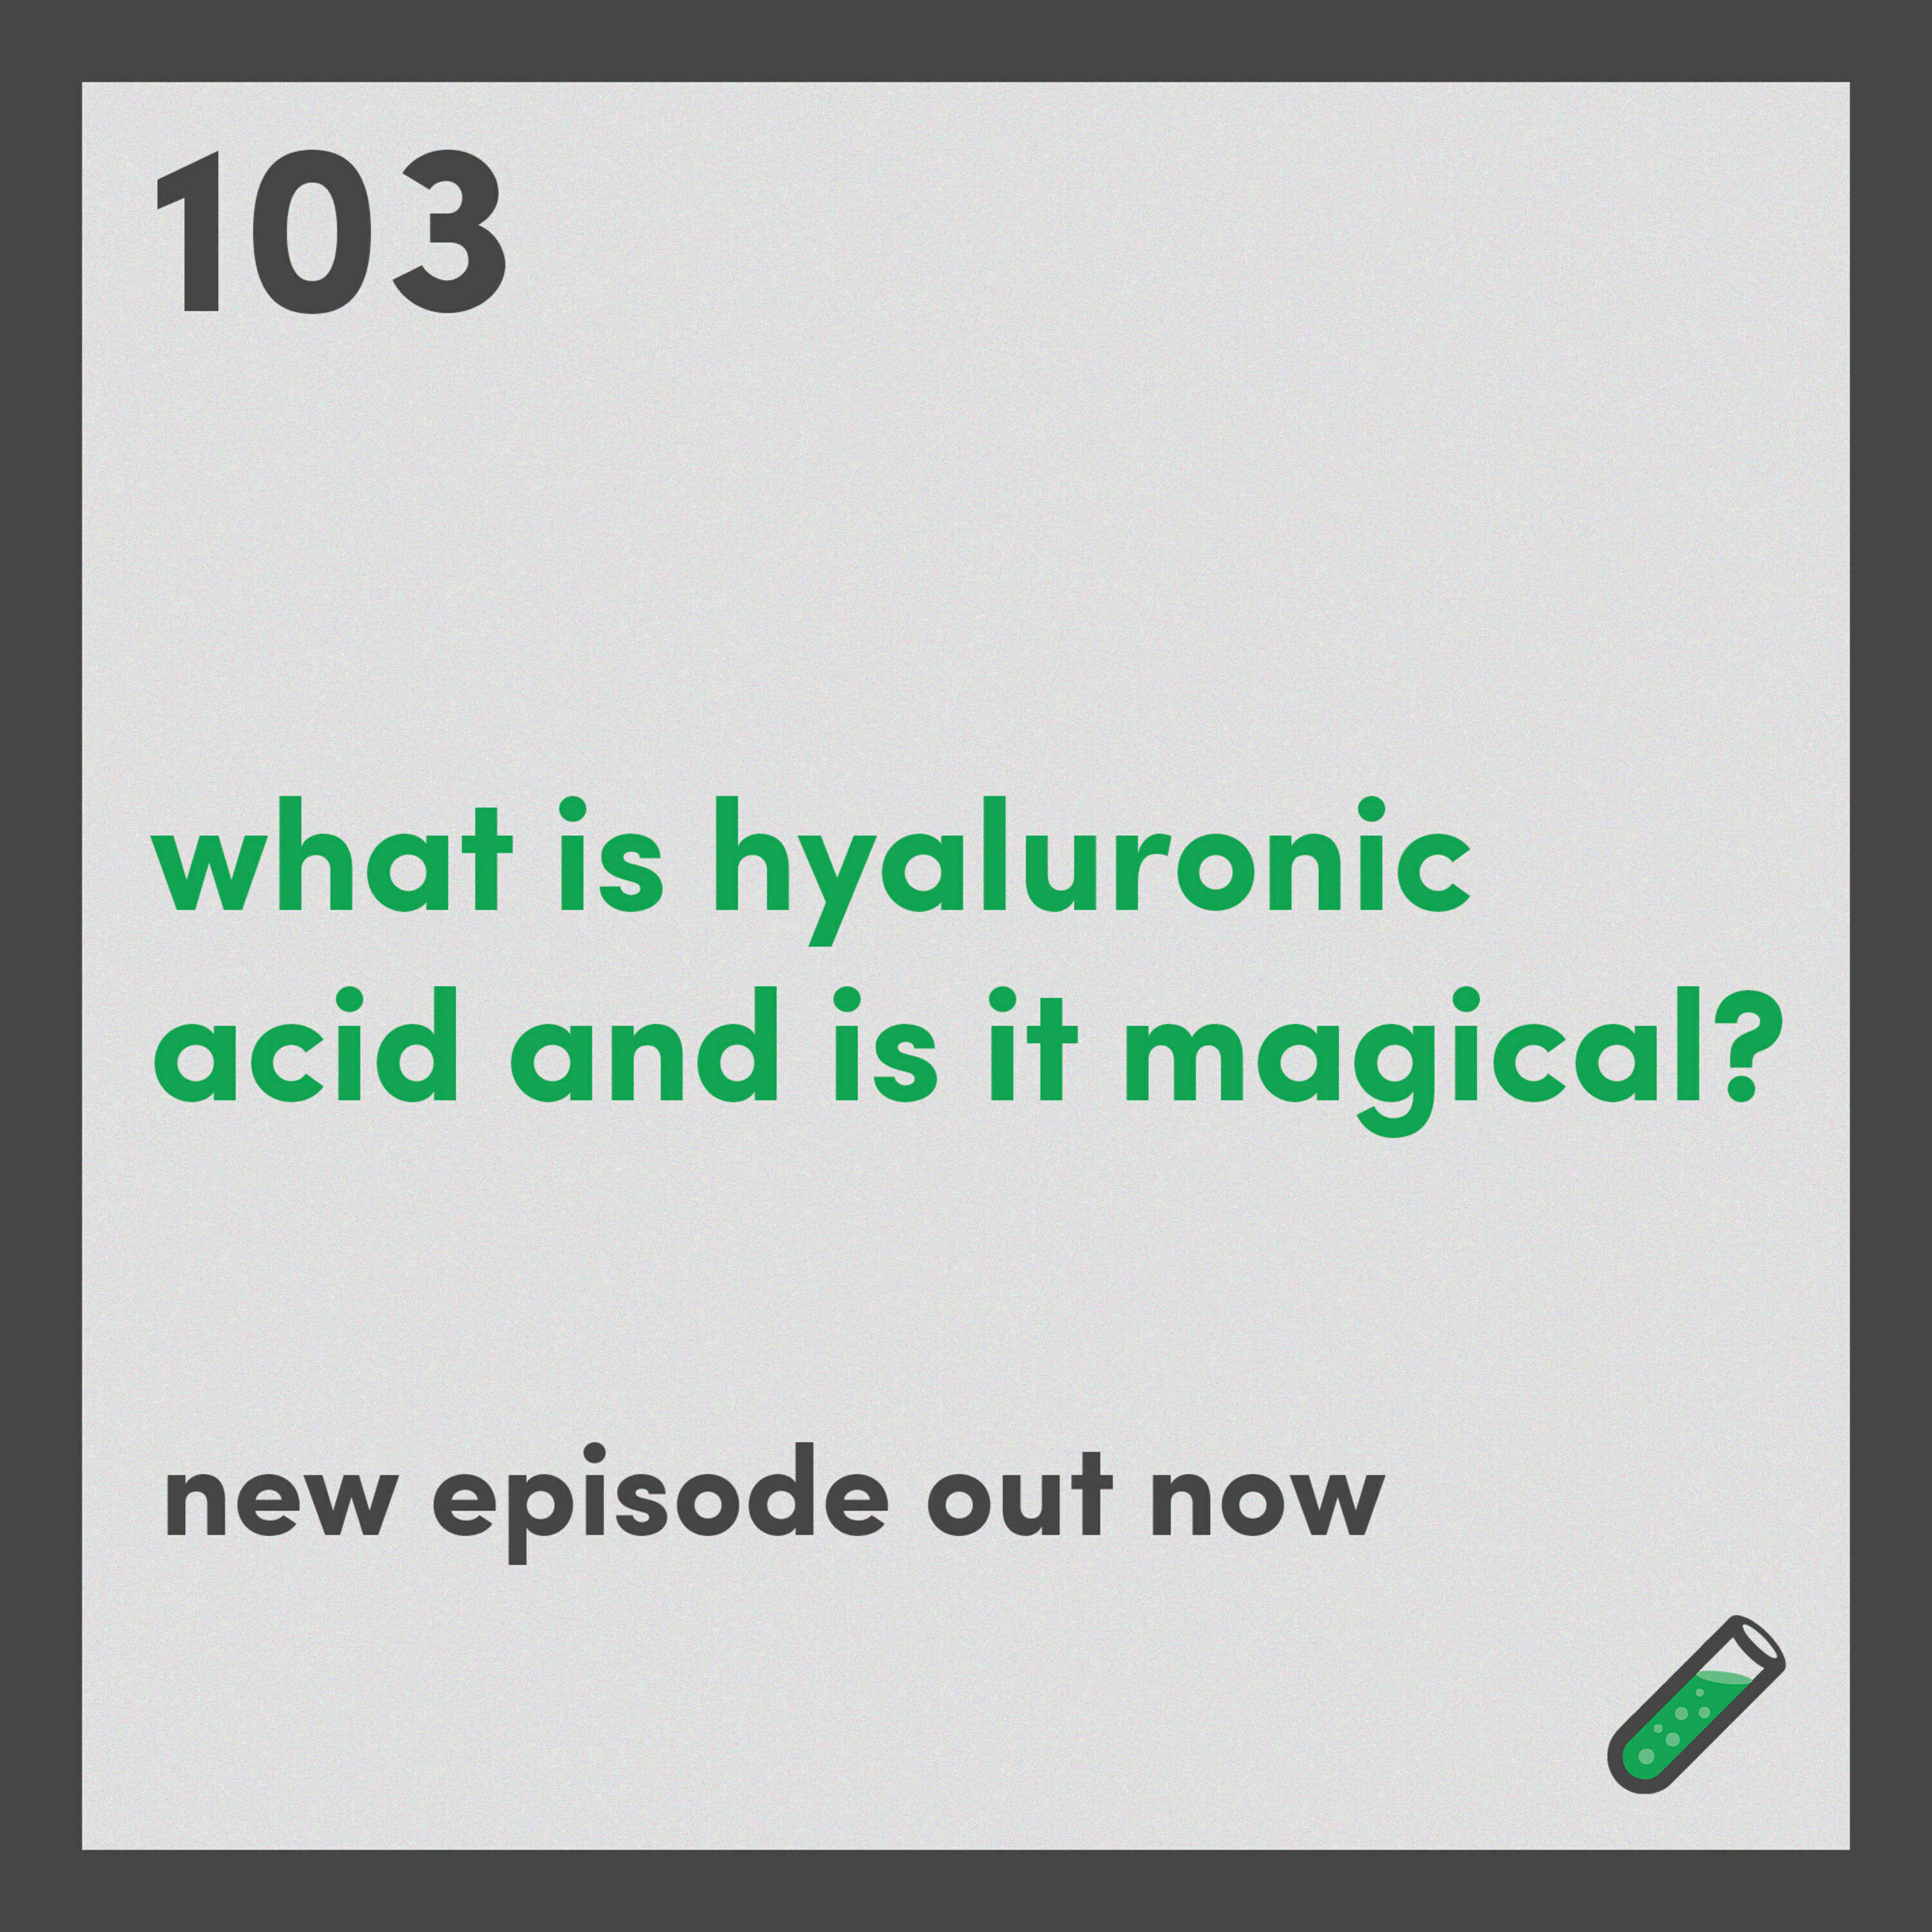 What is hyaluronic acid and is it magical?